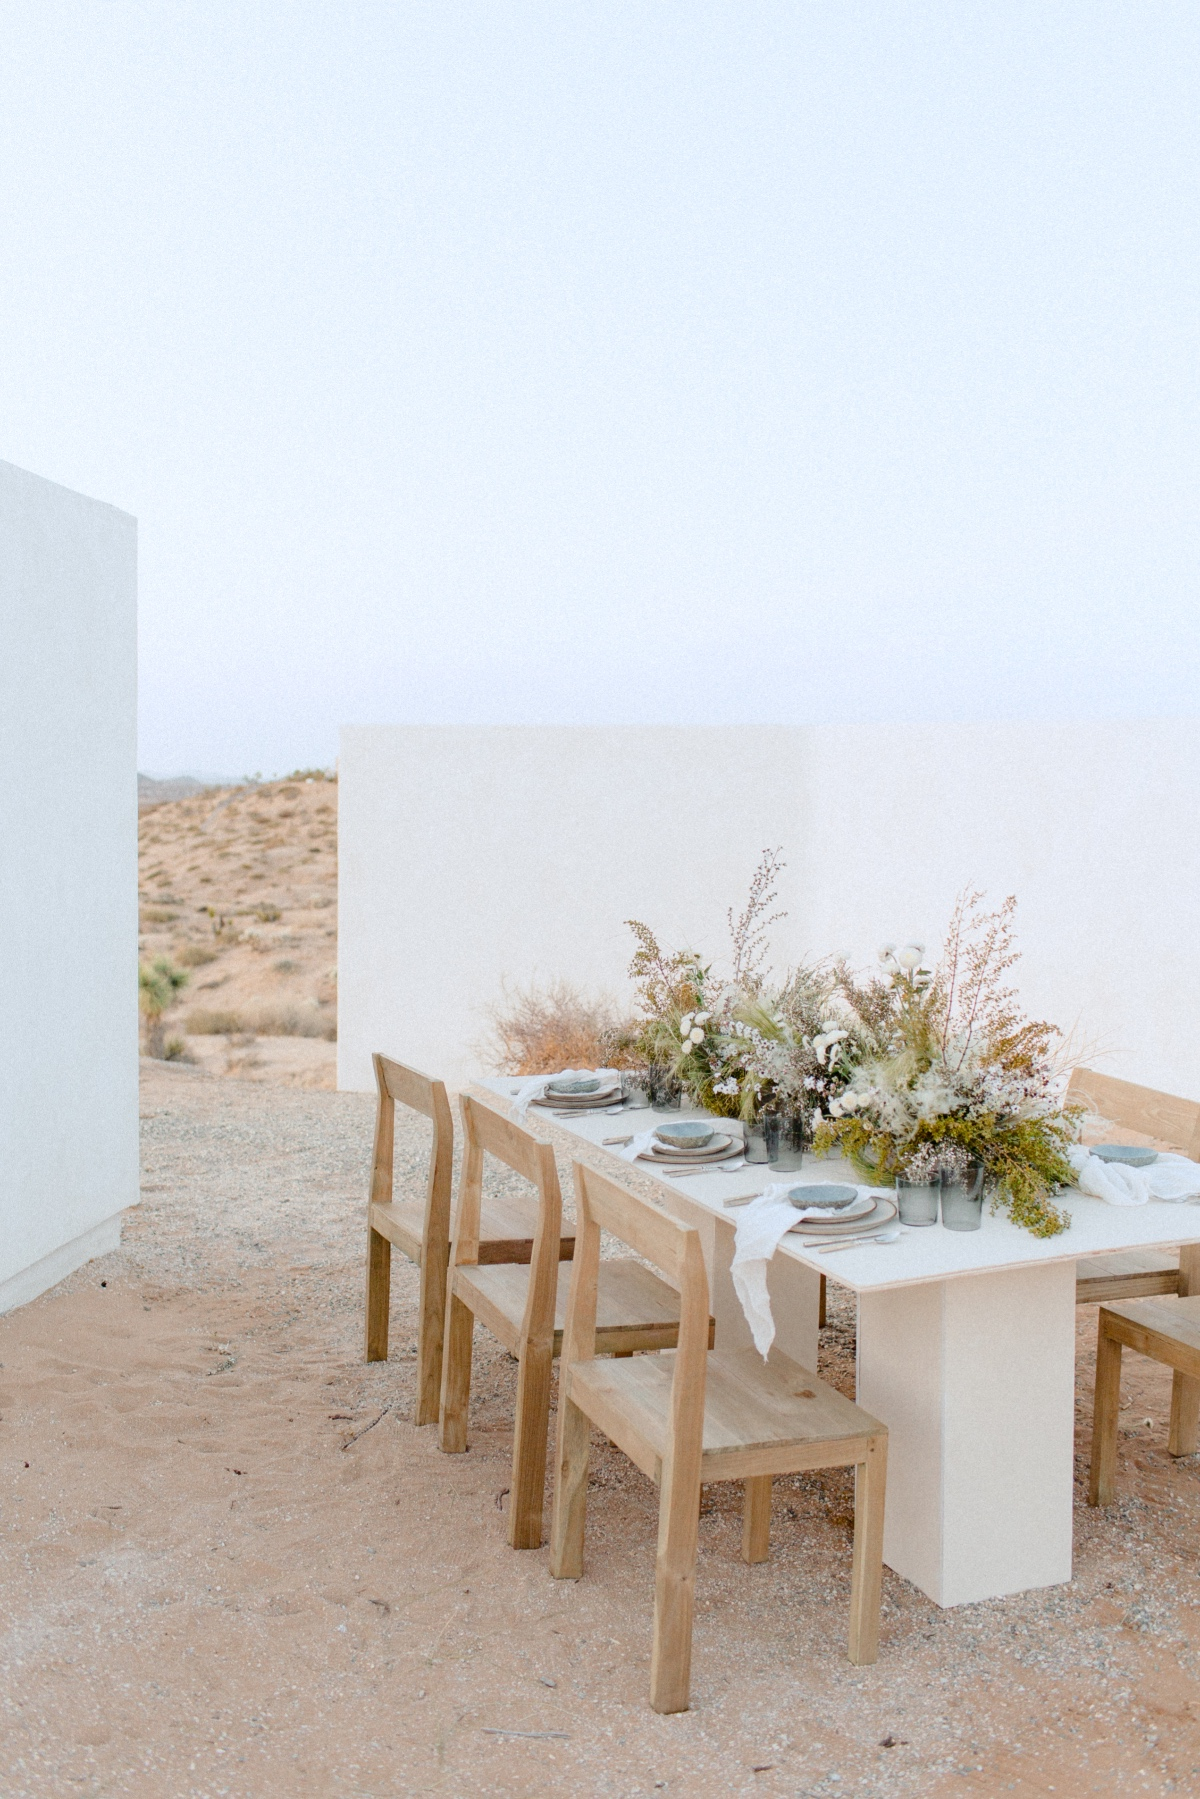 How To Have A Sexy Minimalist Elopement At An AirBnb